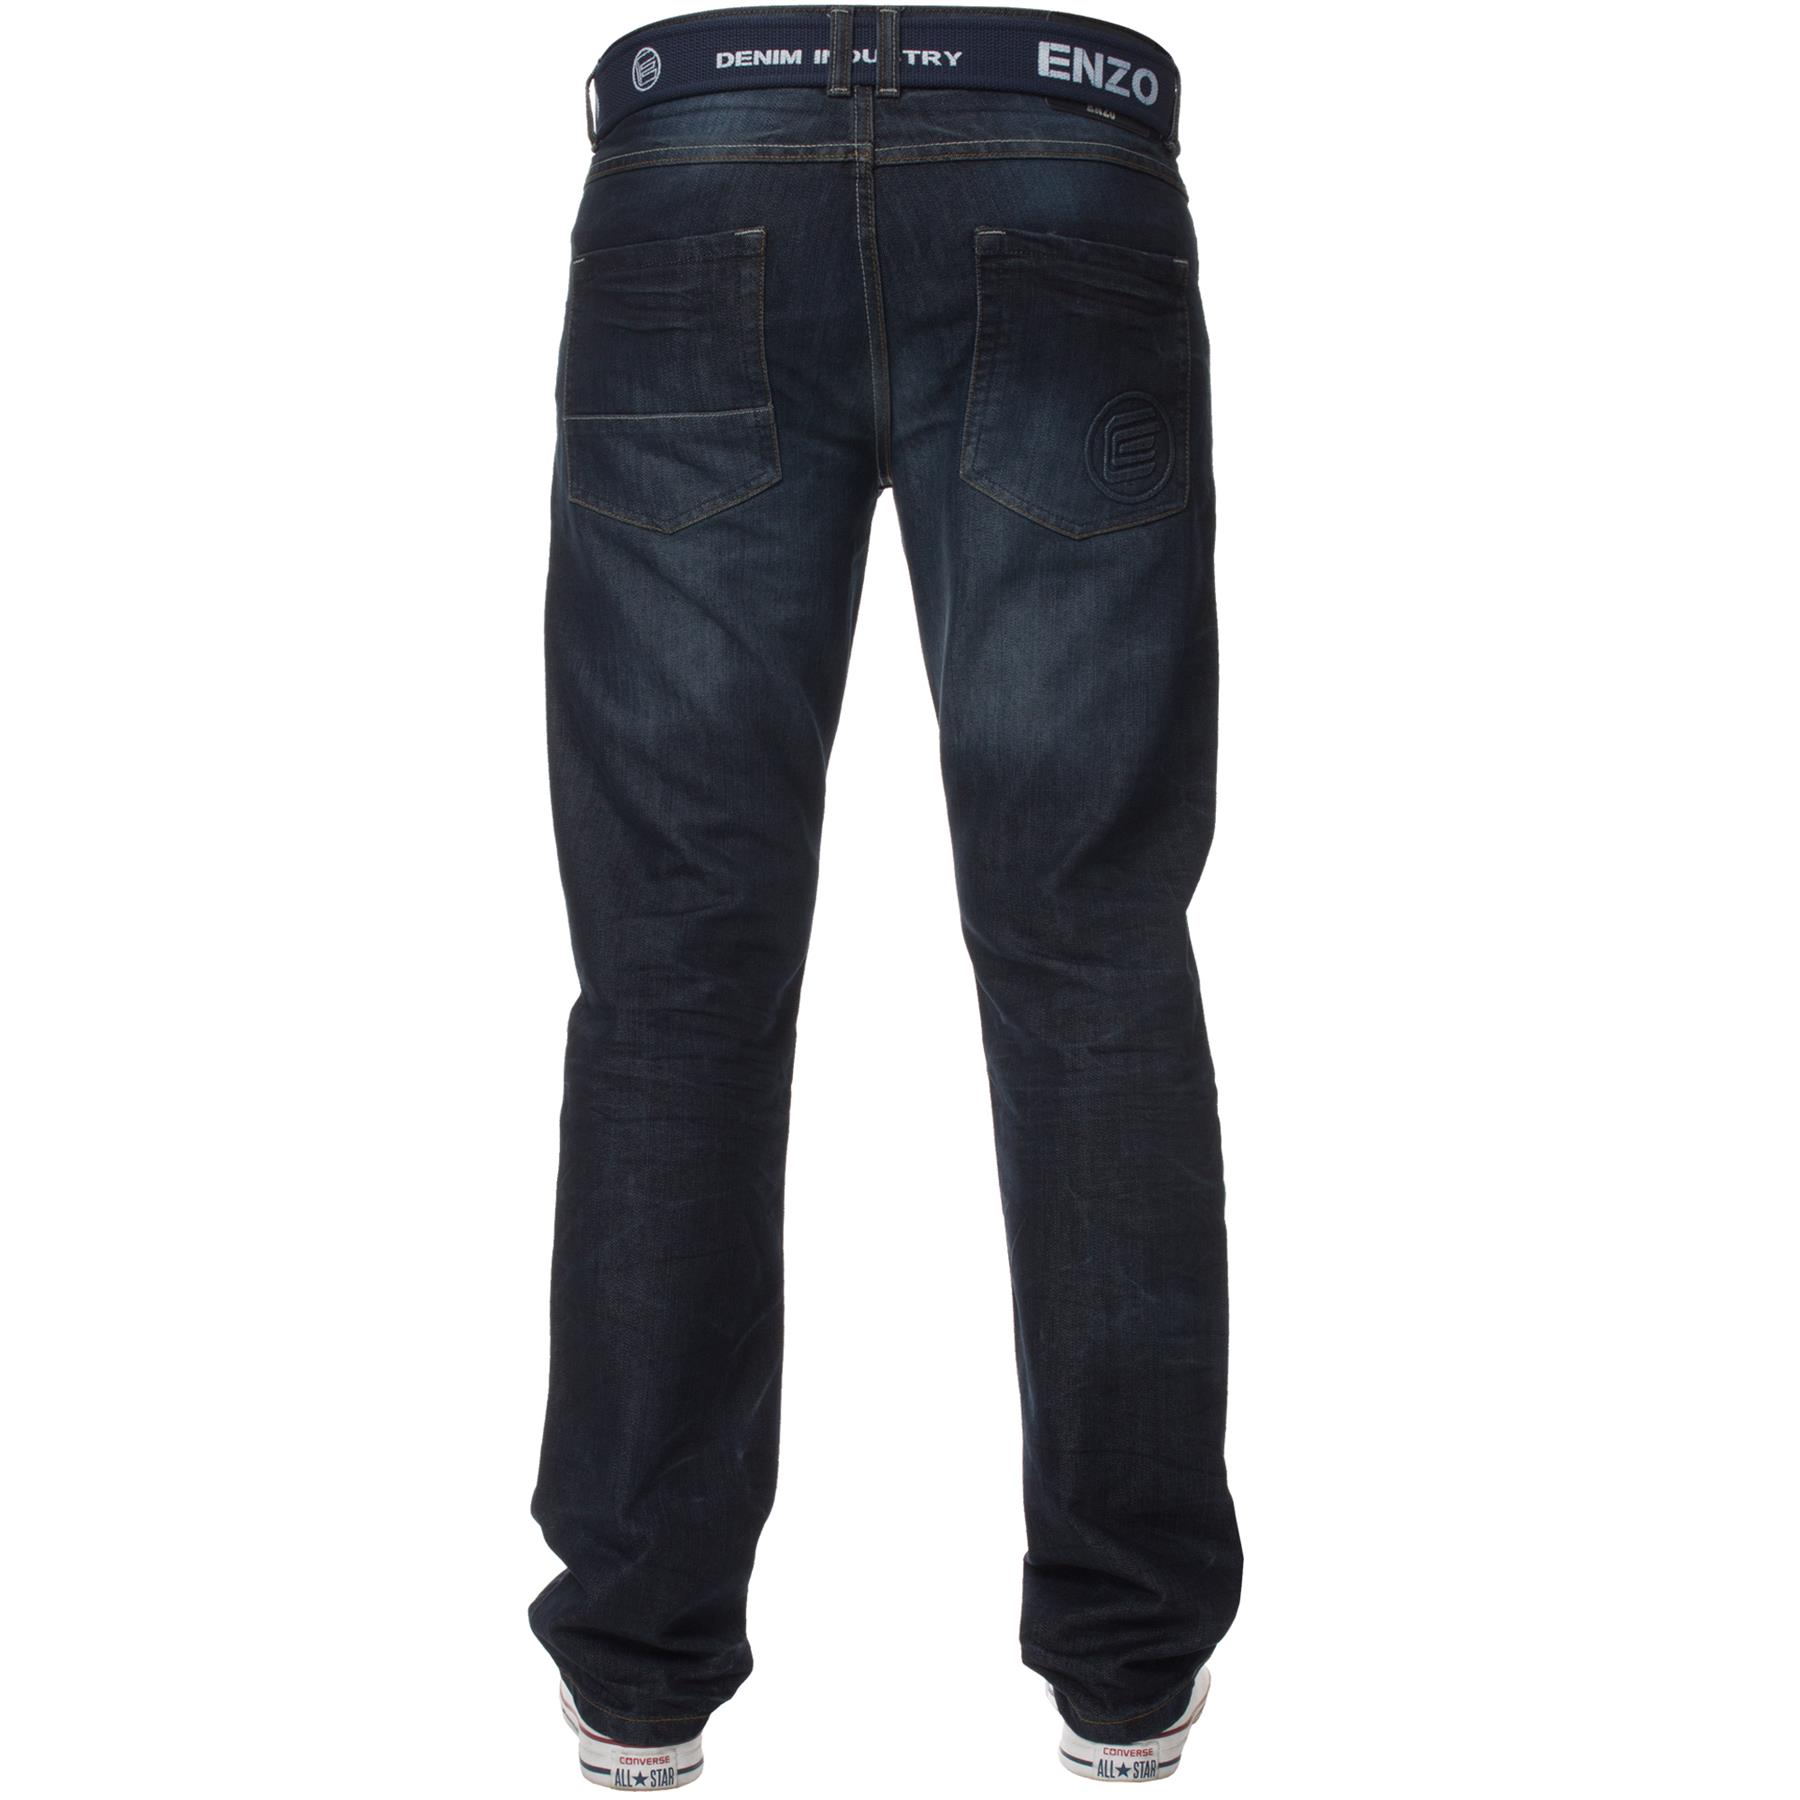 Enzo-Mens-Jeans-Big-Tall-Leg-King-Size-Denim-Pants-Chino-Trousers-Waist-44-034-60-034 miniature 76